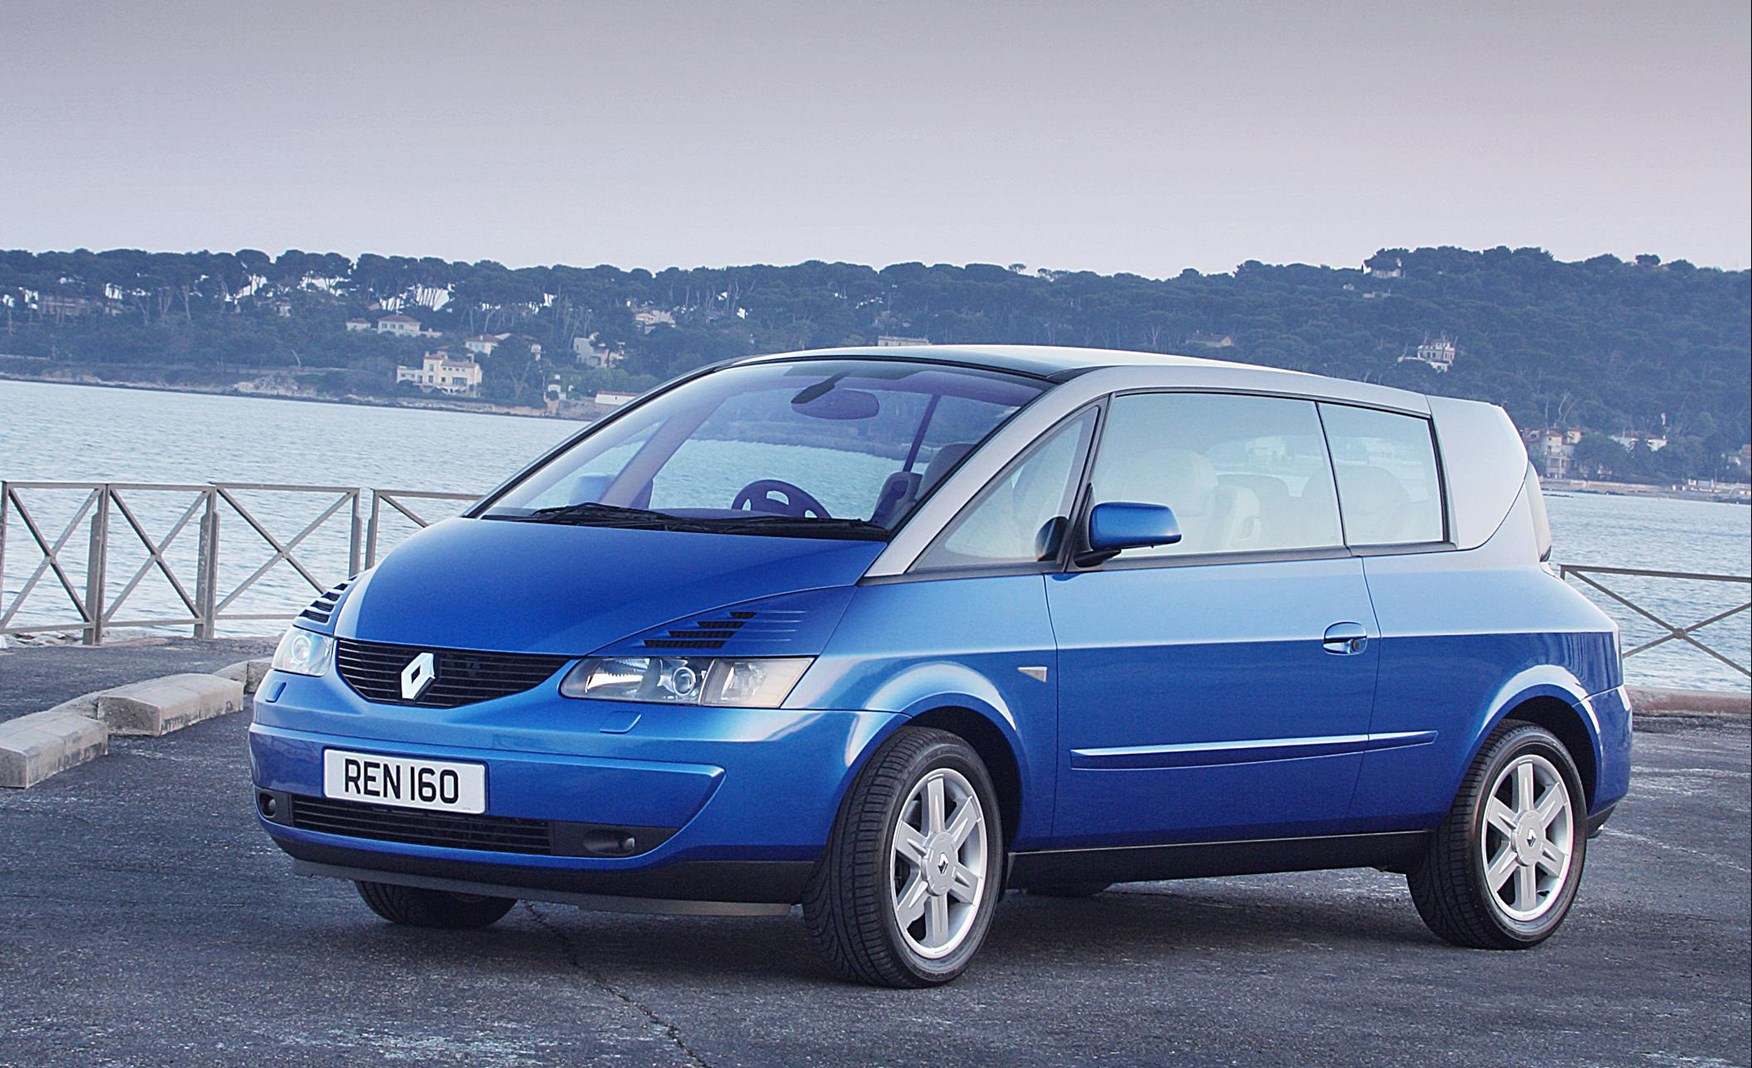 renault avantime coupe review 2002 2003 parkers. Black Bedroom Furniture Sets. Home Design Ideas